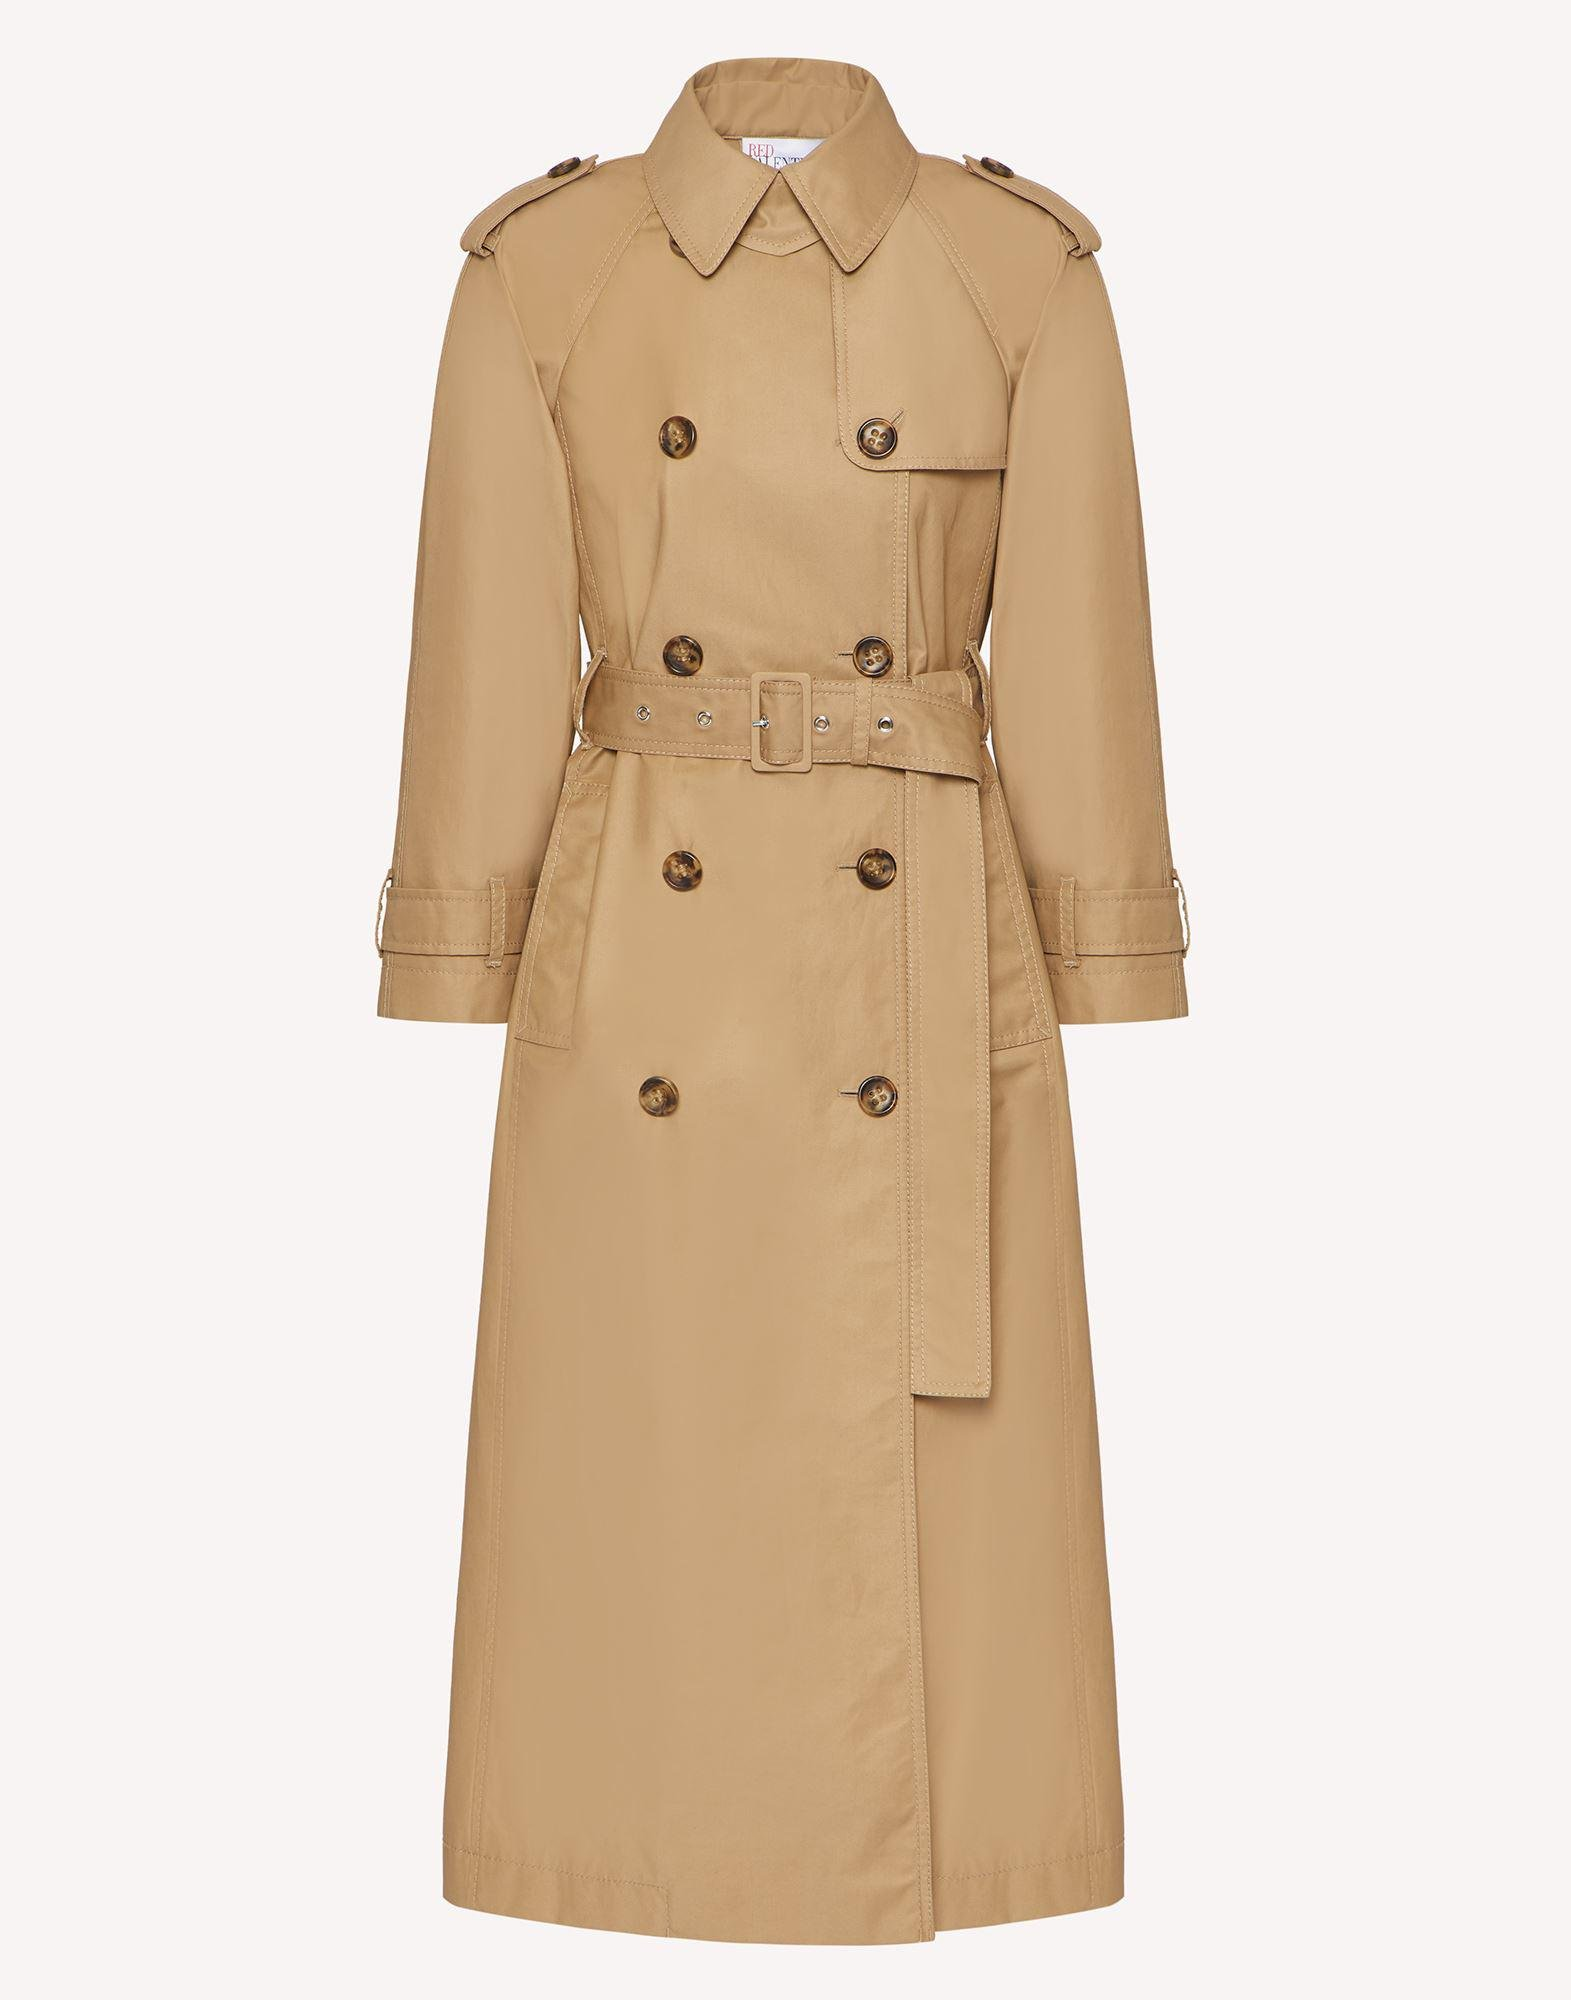 GABARDINE TRENCH COAT WITH BOW DETAILS 3